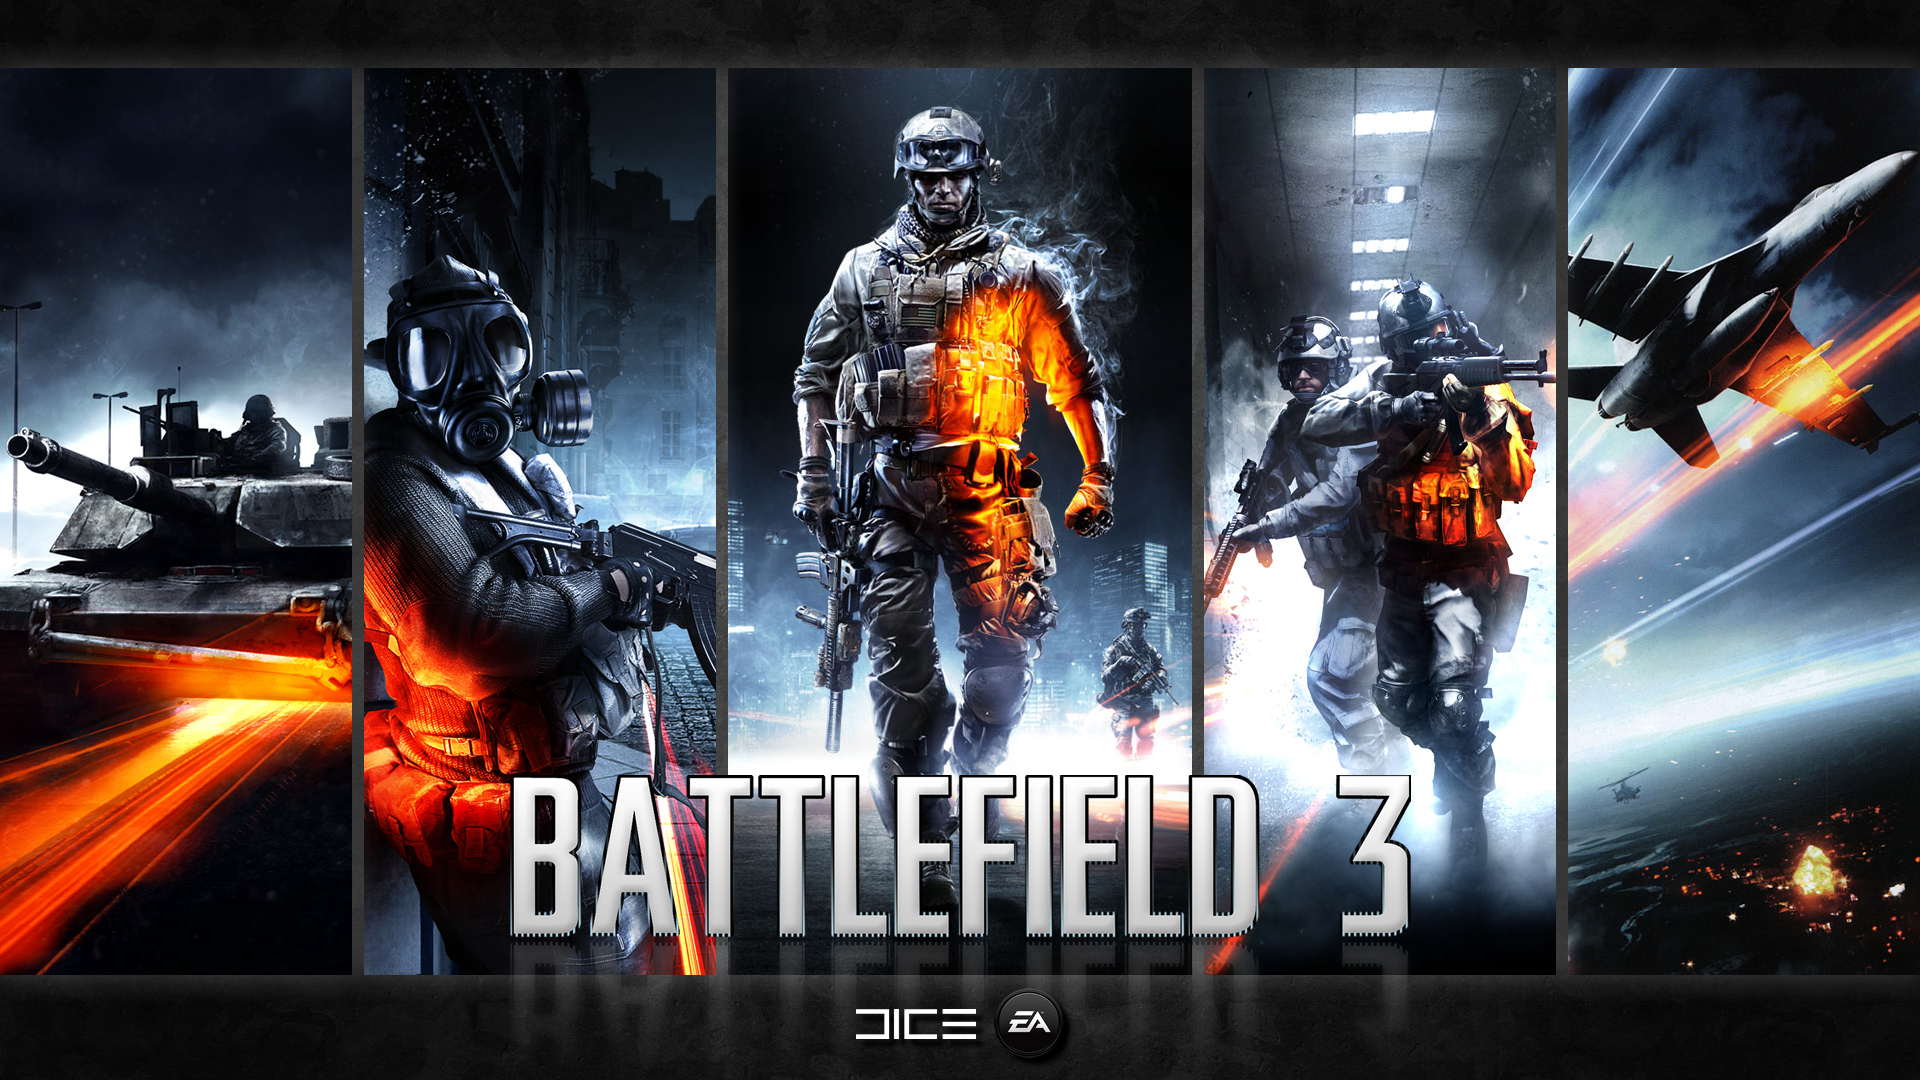 Battlefield 3 PC 737.85 Kb